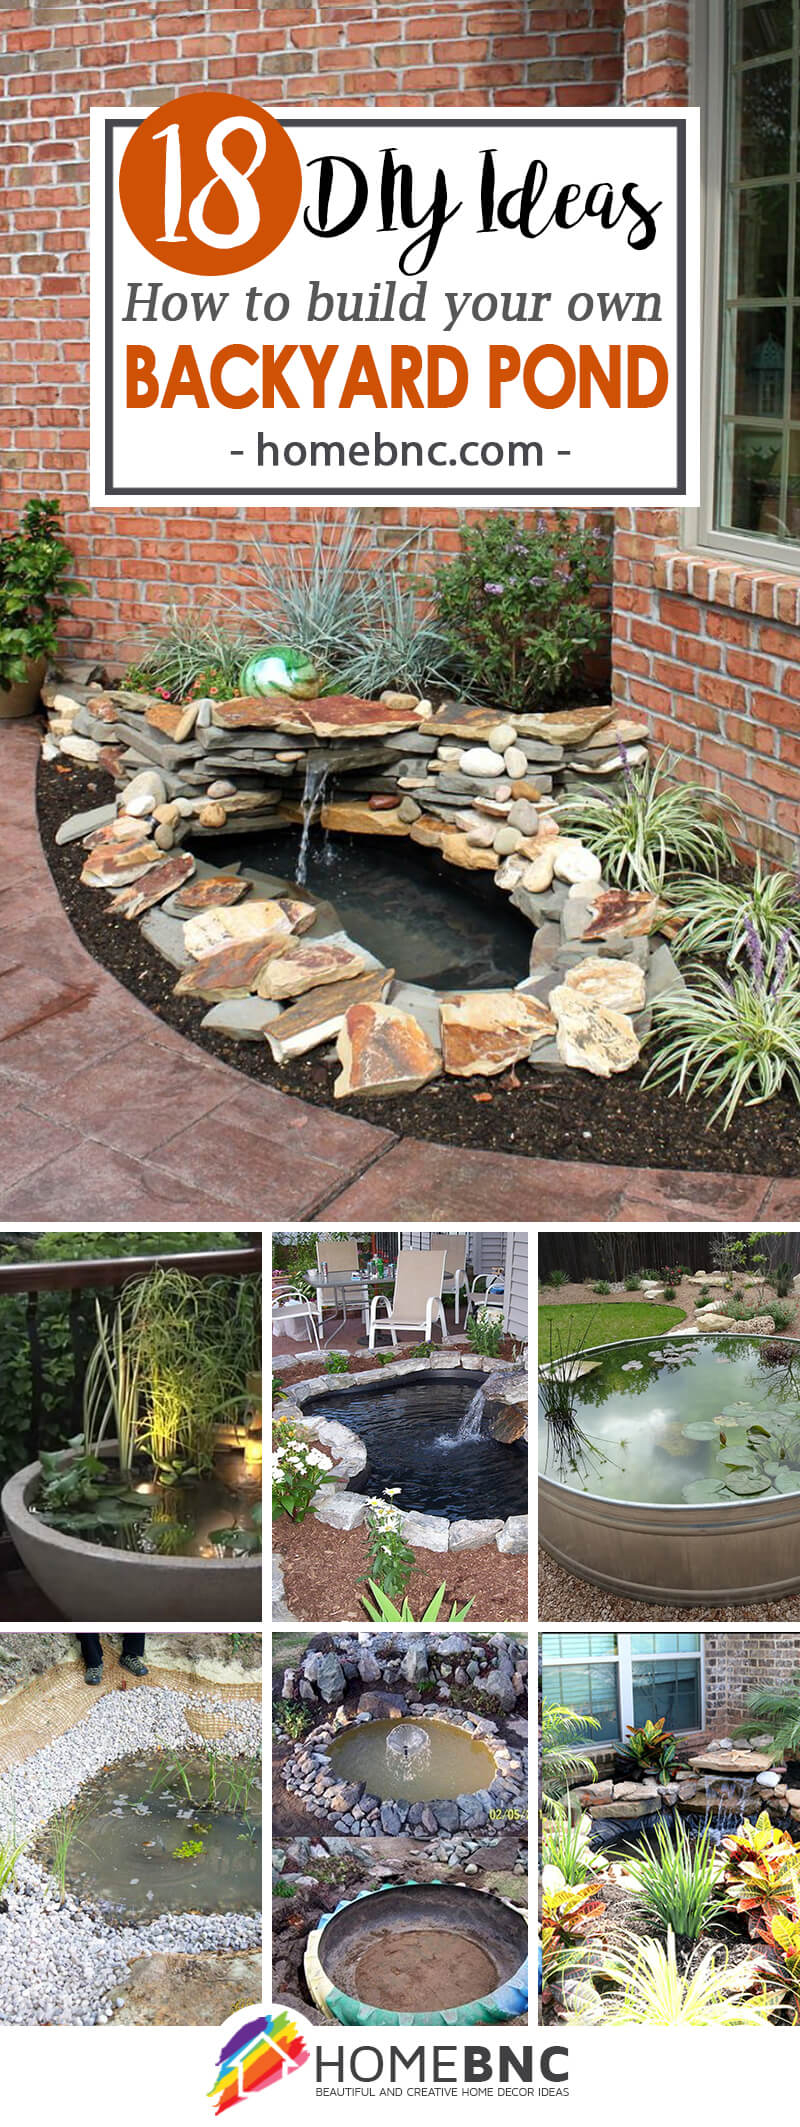 18 Best Diy Backyard Pond Ideas And Designs For 2019 regarding Backyard Pond Ideas Small